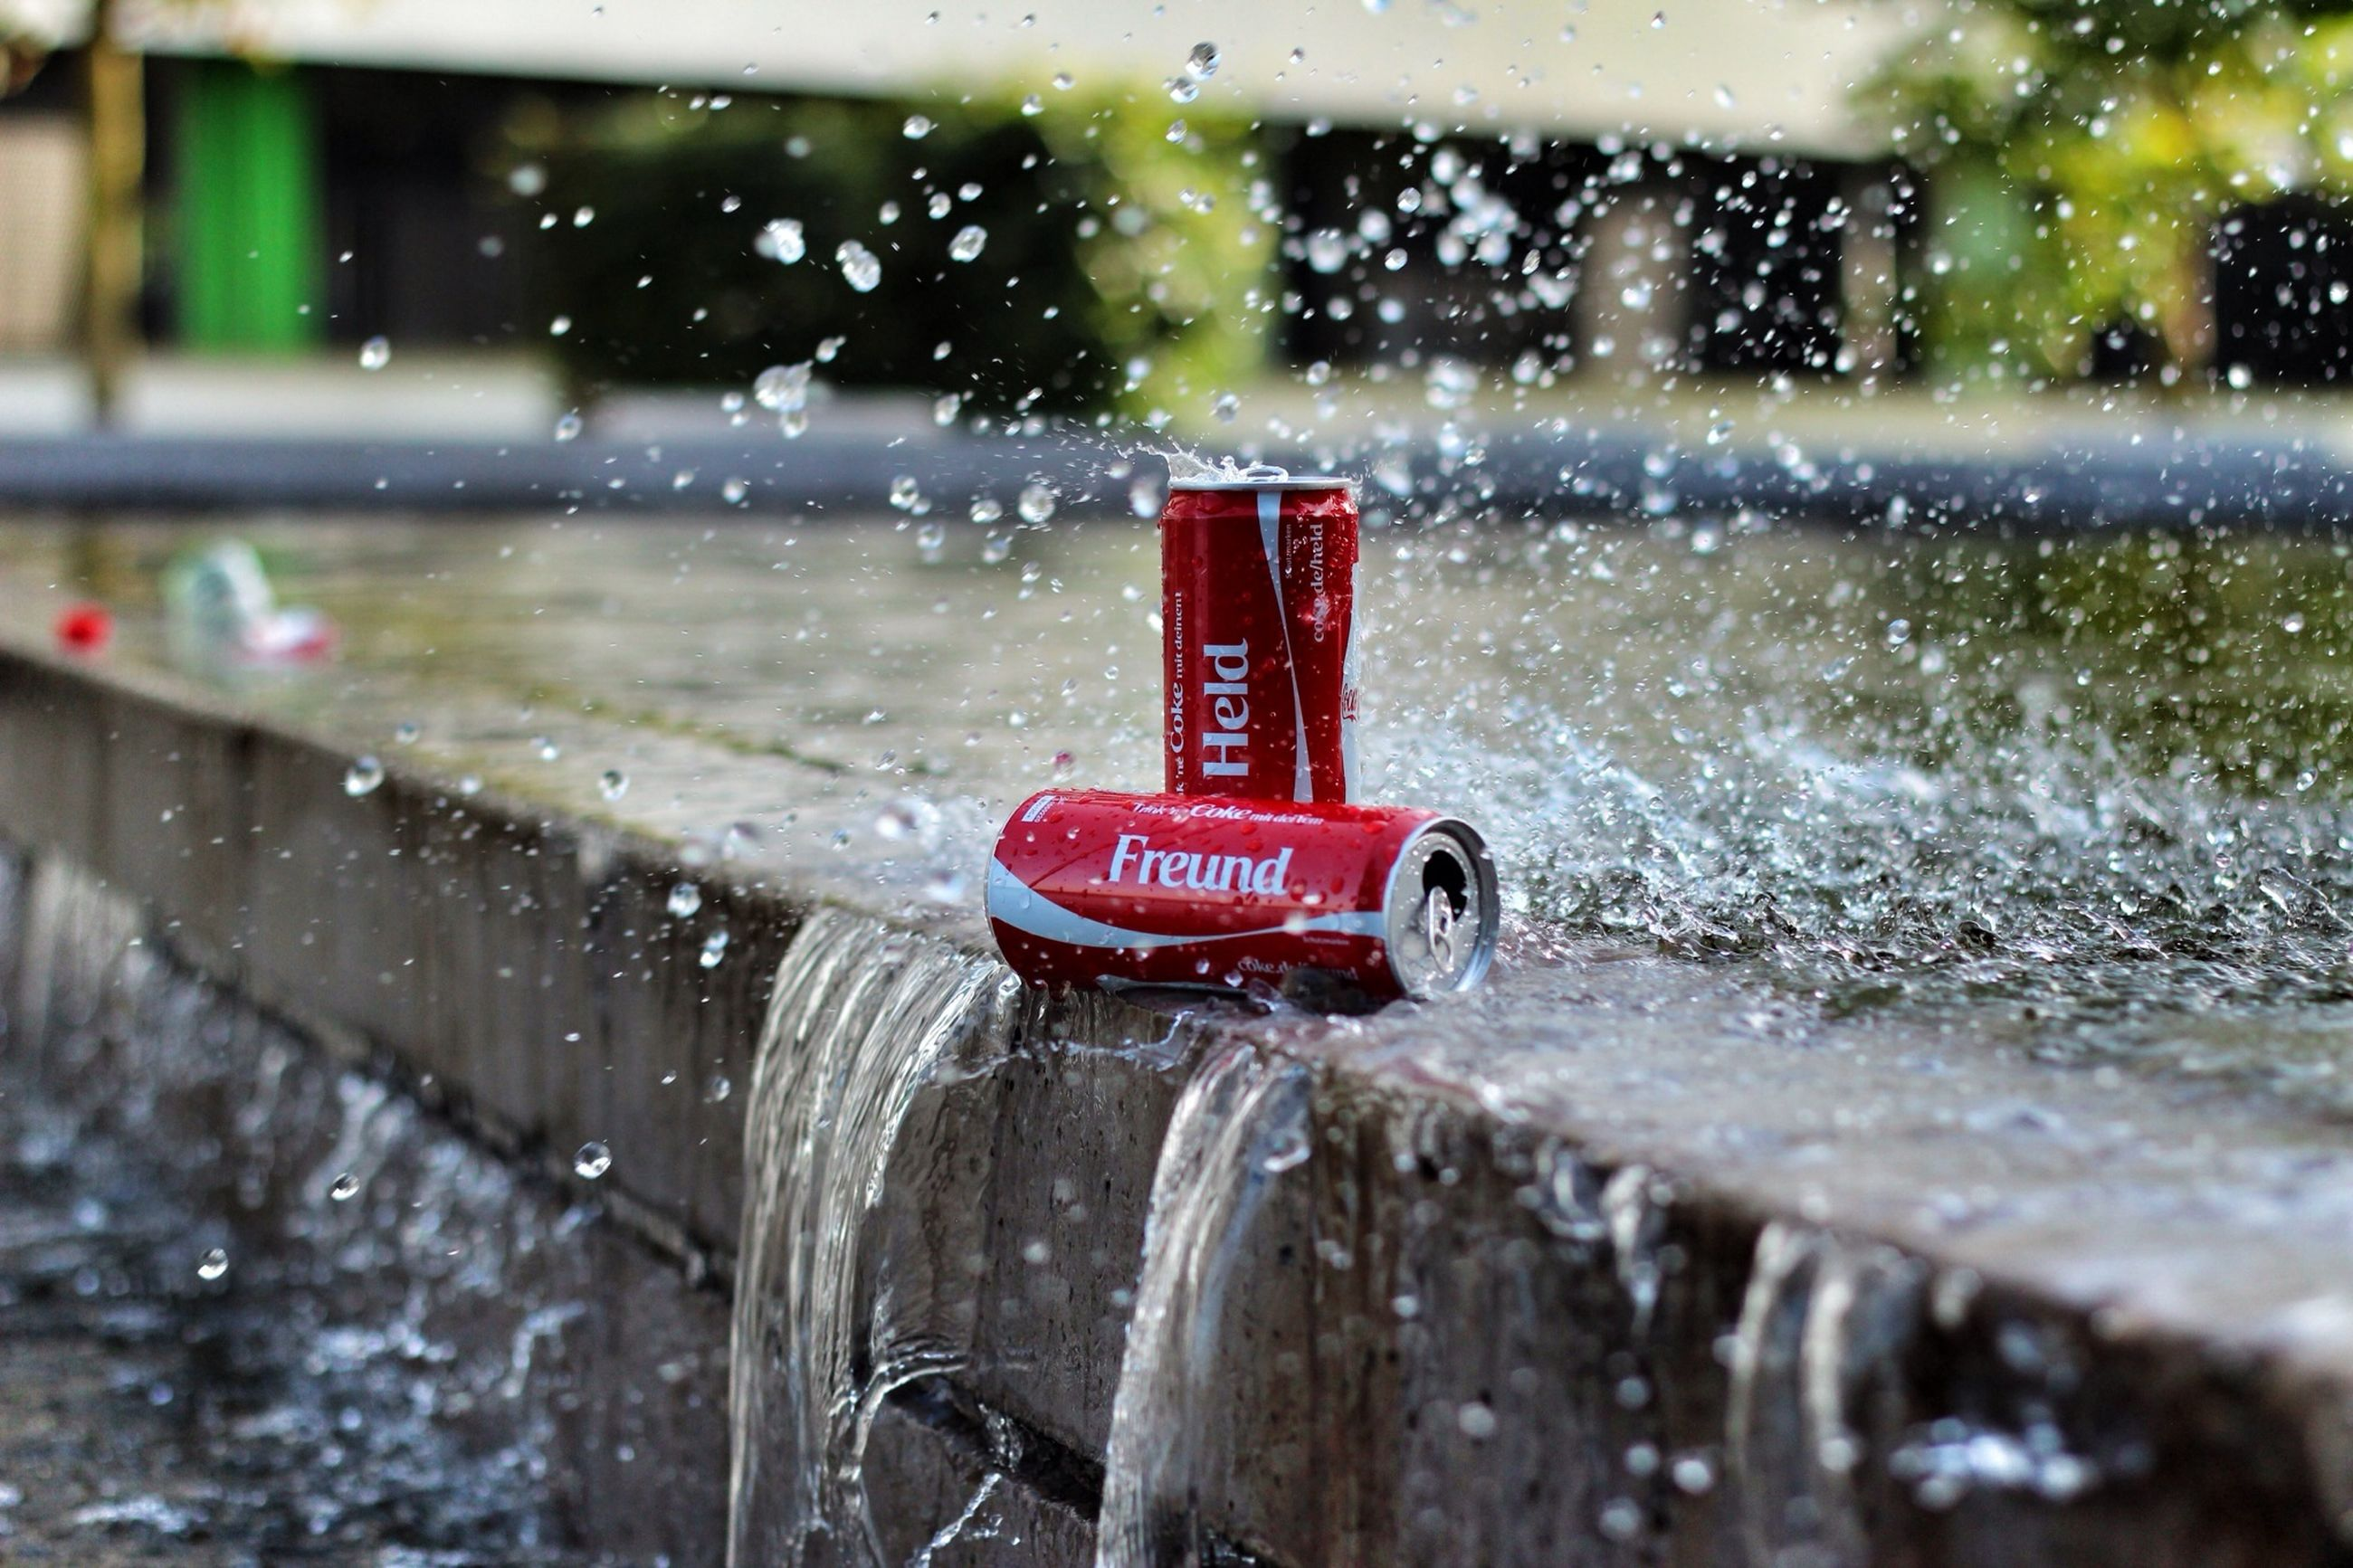 water, red, wet, drop, rain, focus on foreground, weather, close-up, transportation, mode of transport, season, land vehicle, monsoon, glass - material, car, day, transparent, protection, motion, safety